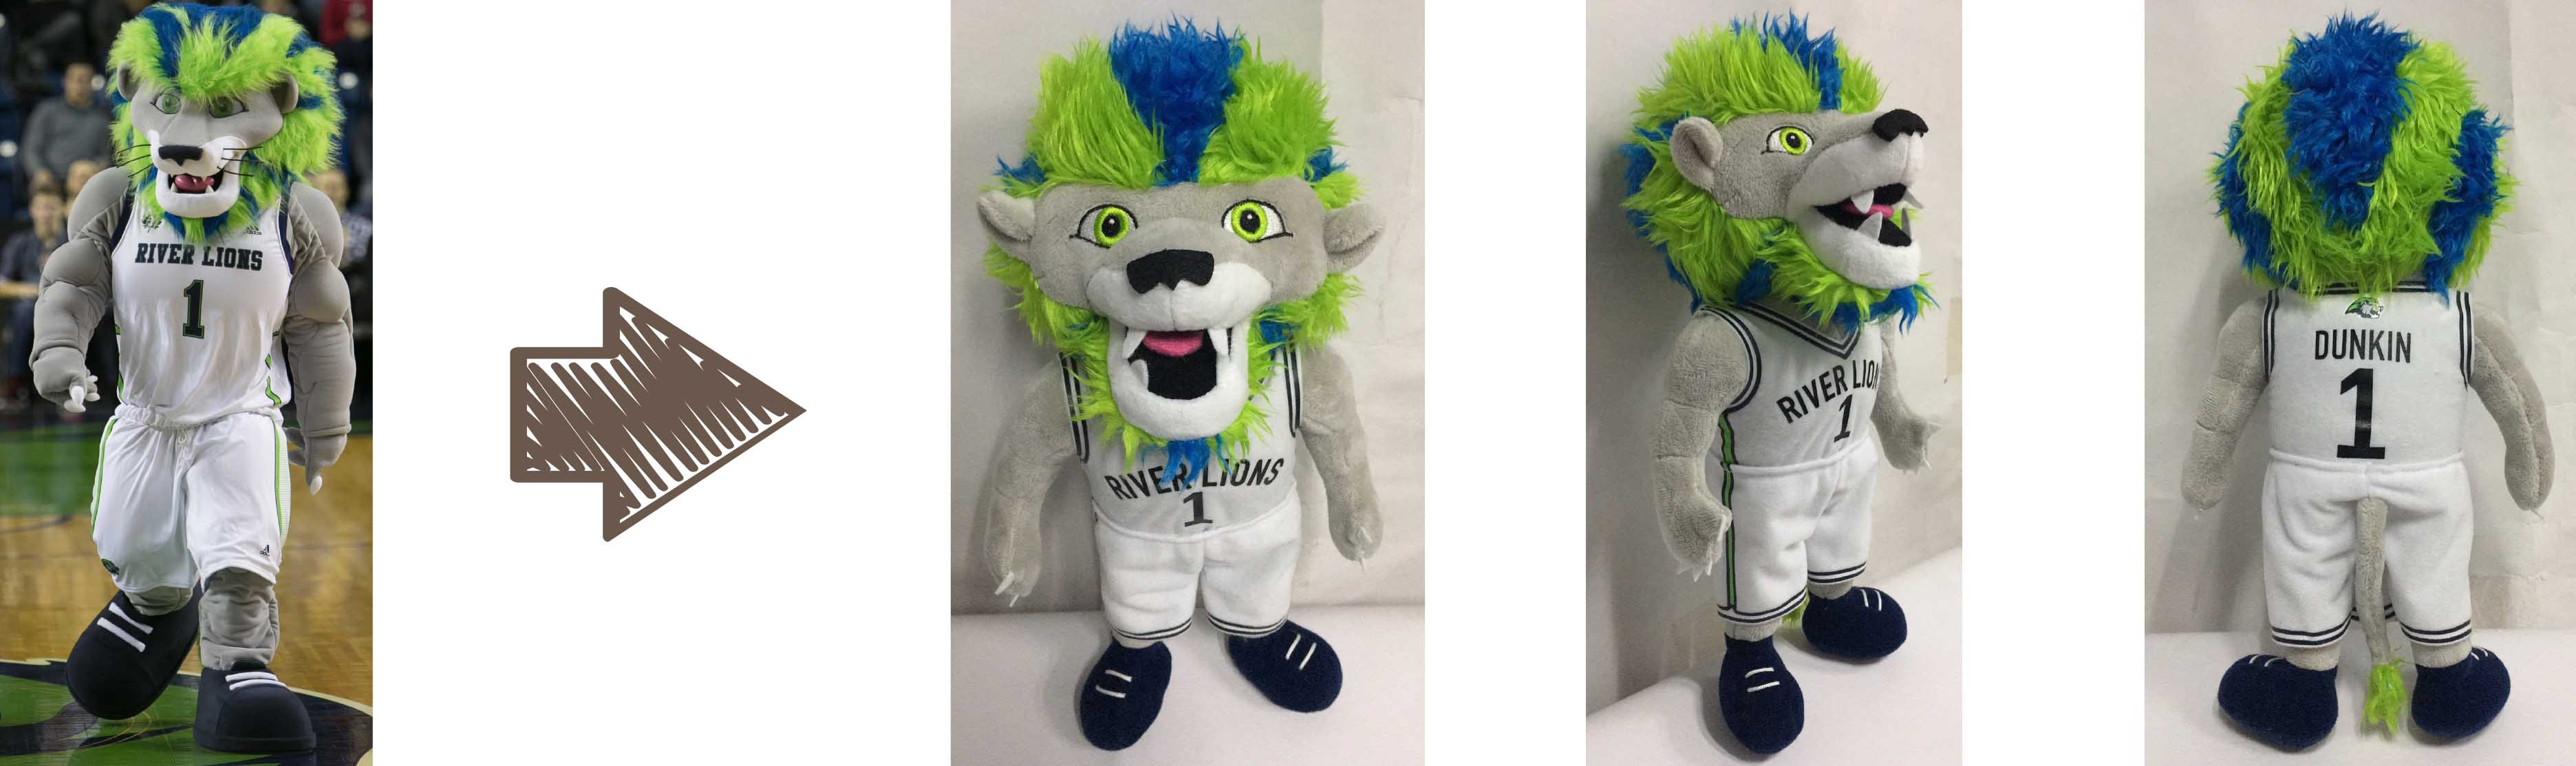 Niagara River Lions mascot stuffed animal